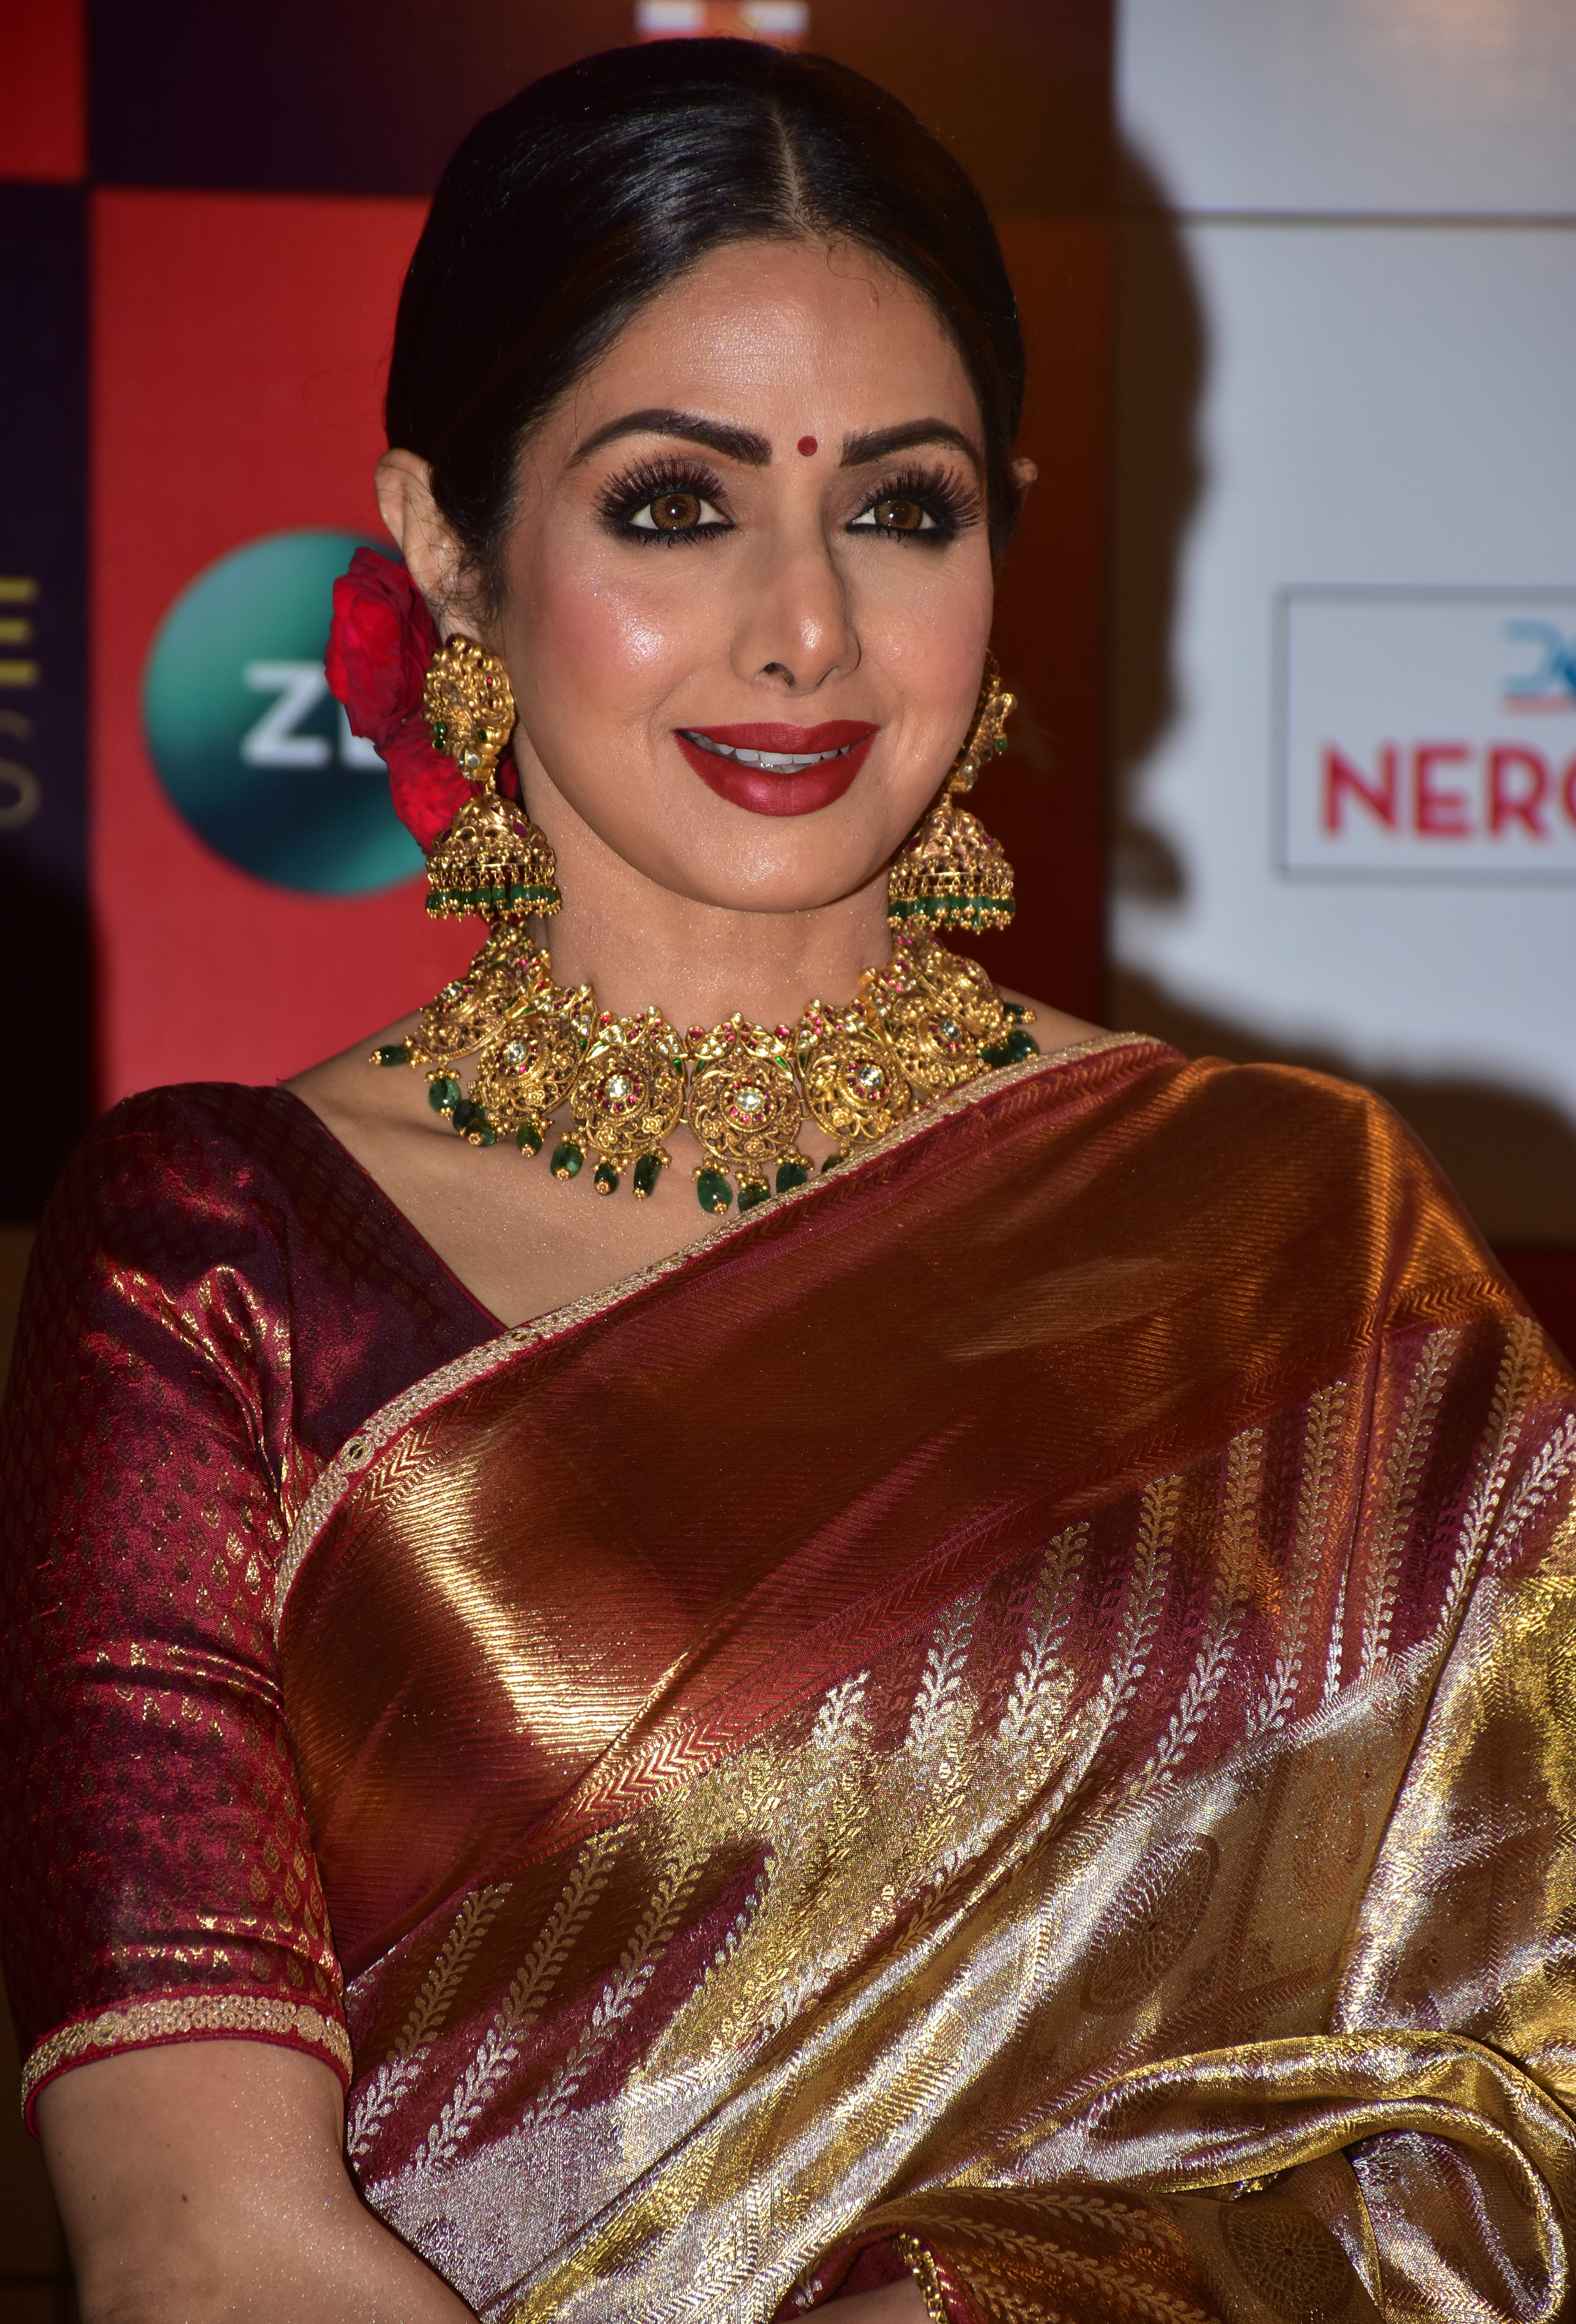 Sridevi-Drowned-In-A-Hotel-Bathtub-After-Losing-Consciousness-Officials-Say